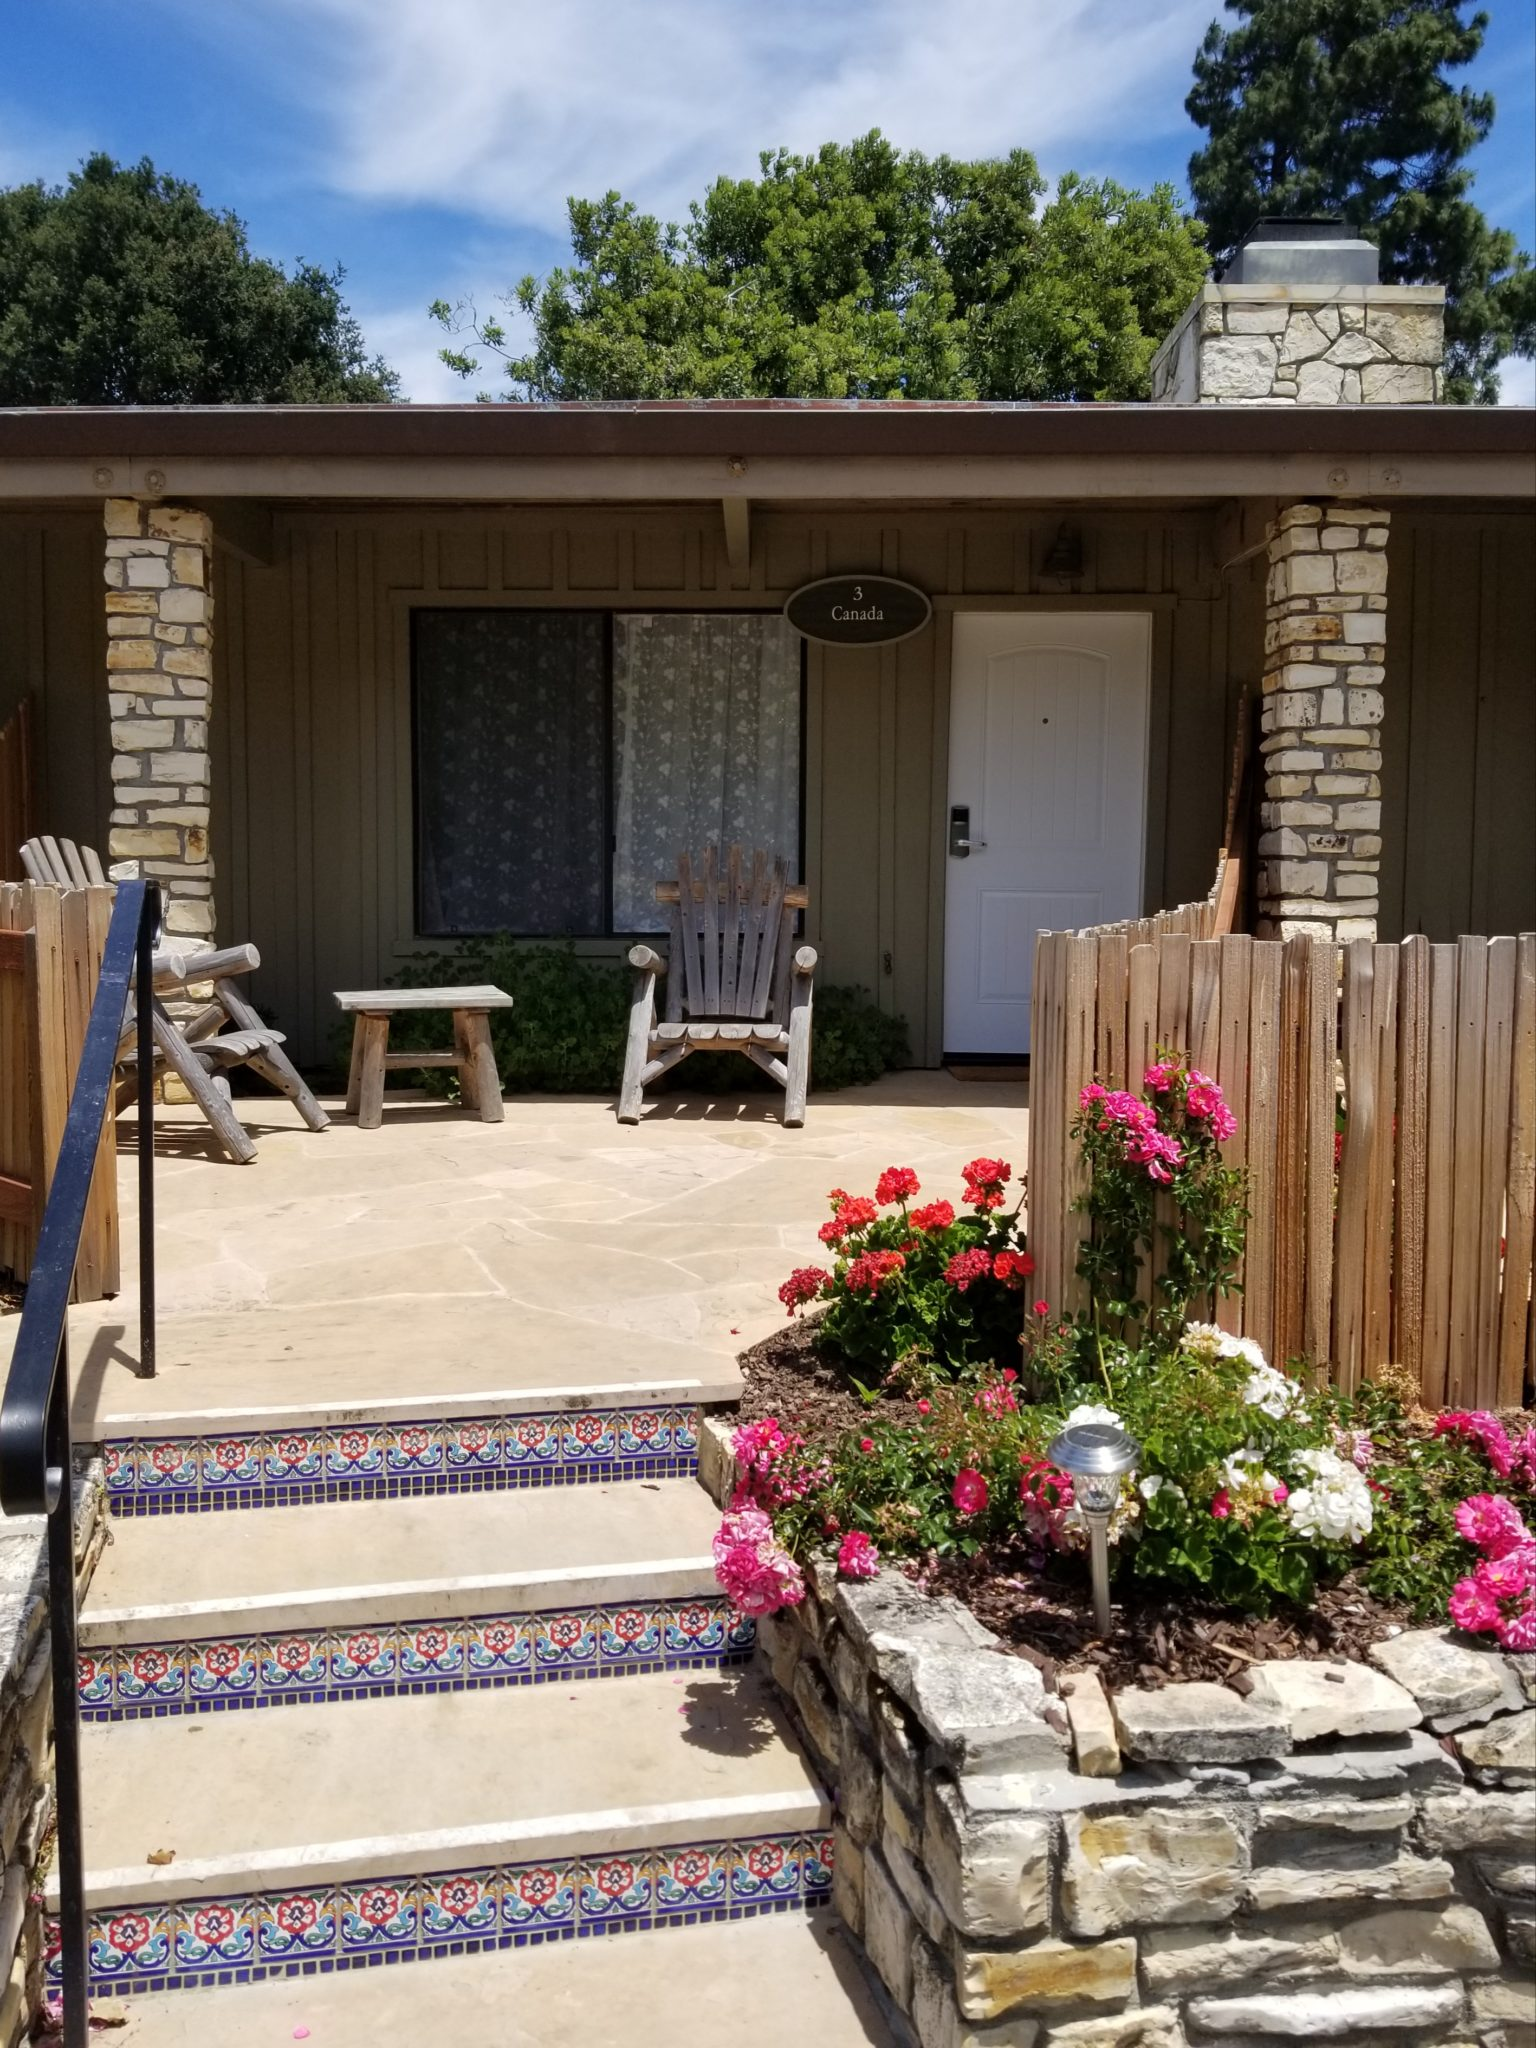 Guest room entrance with concrete steps, blooming colorful flowers and two chairs